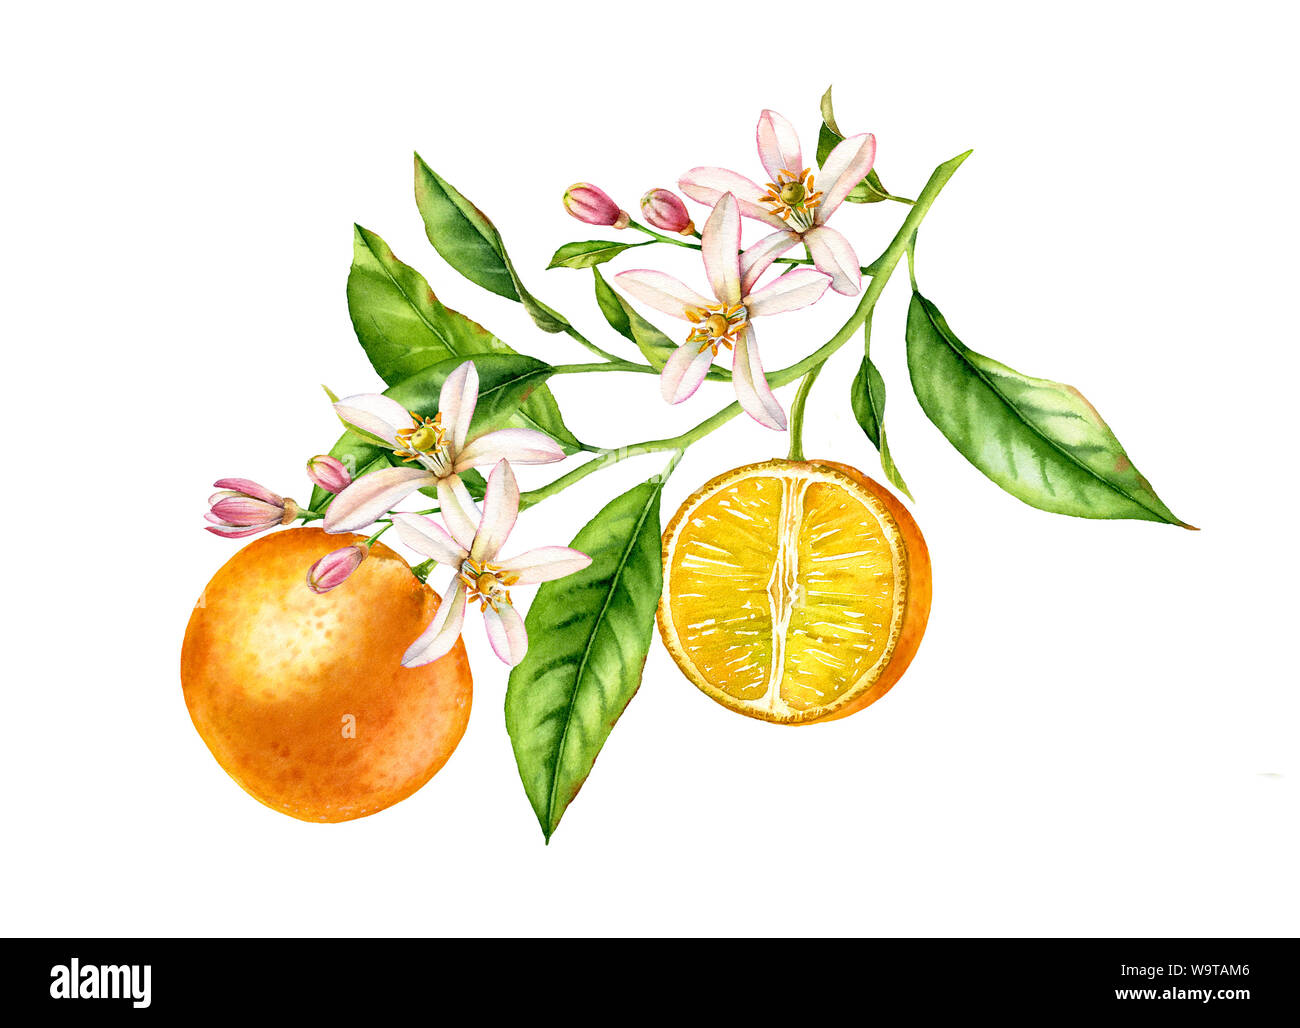 Orange Fruit Tree Branch With Flowers Leaves Realistic Botanical Watercolor Floral Composition Blooming Half Slice Citrus Isolated Artwork On White Stock Photo Alamy